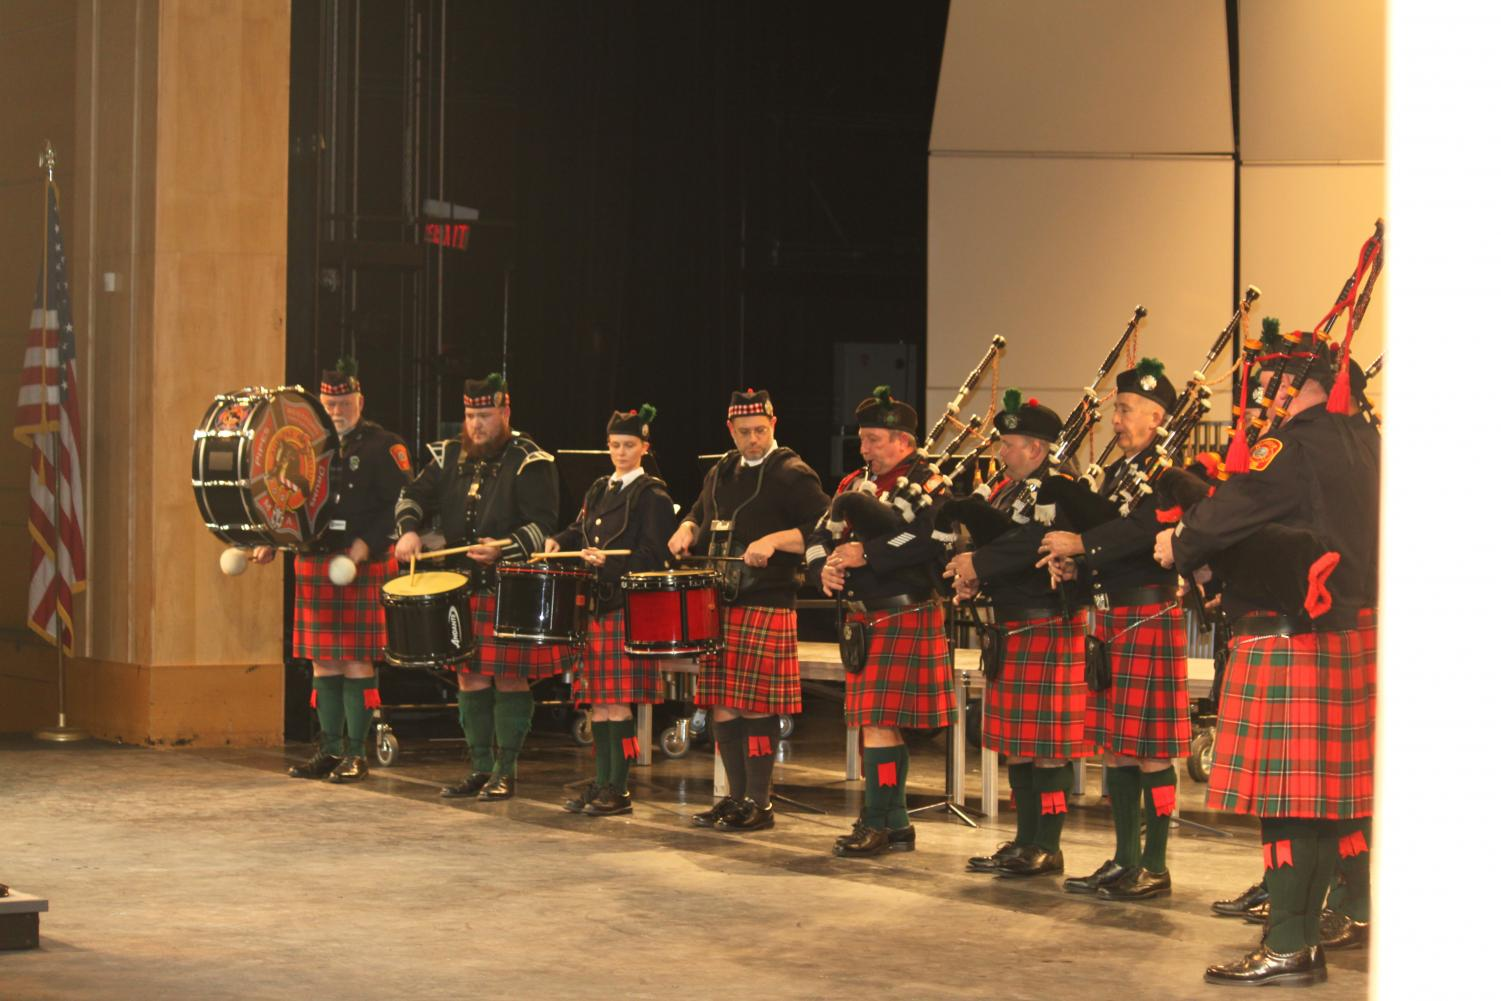 The+Westford+District+Pipes+%26+Drums+perform+traditional+music+before+intermission.